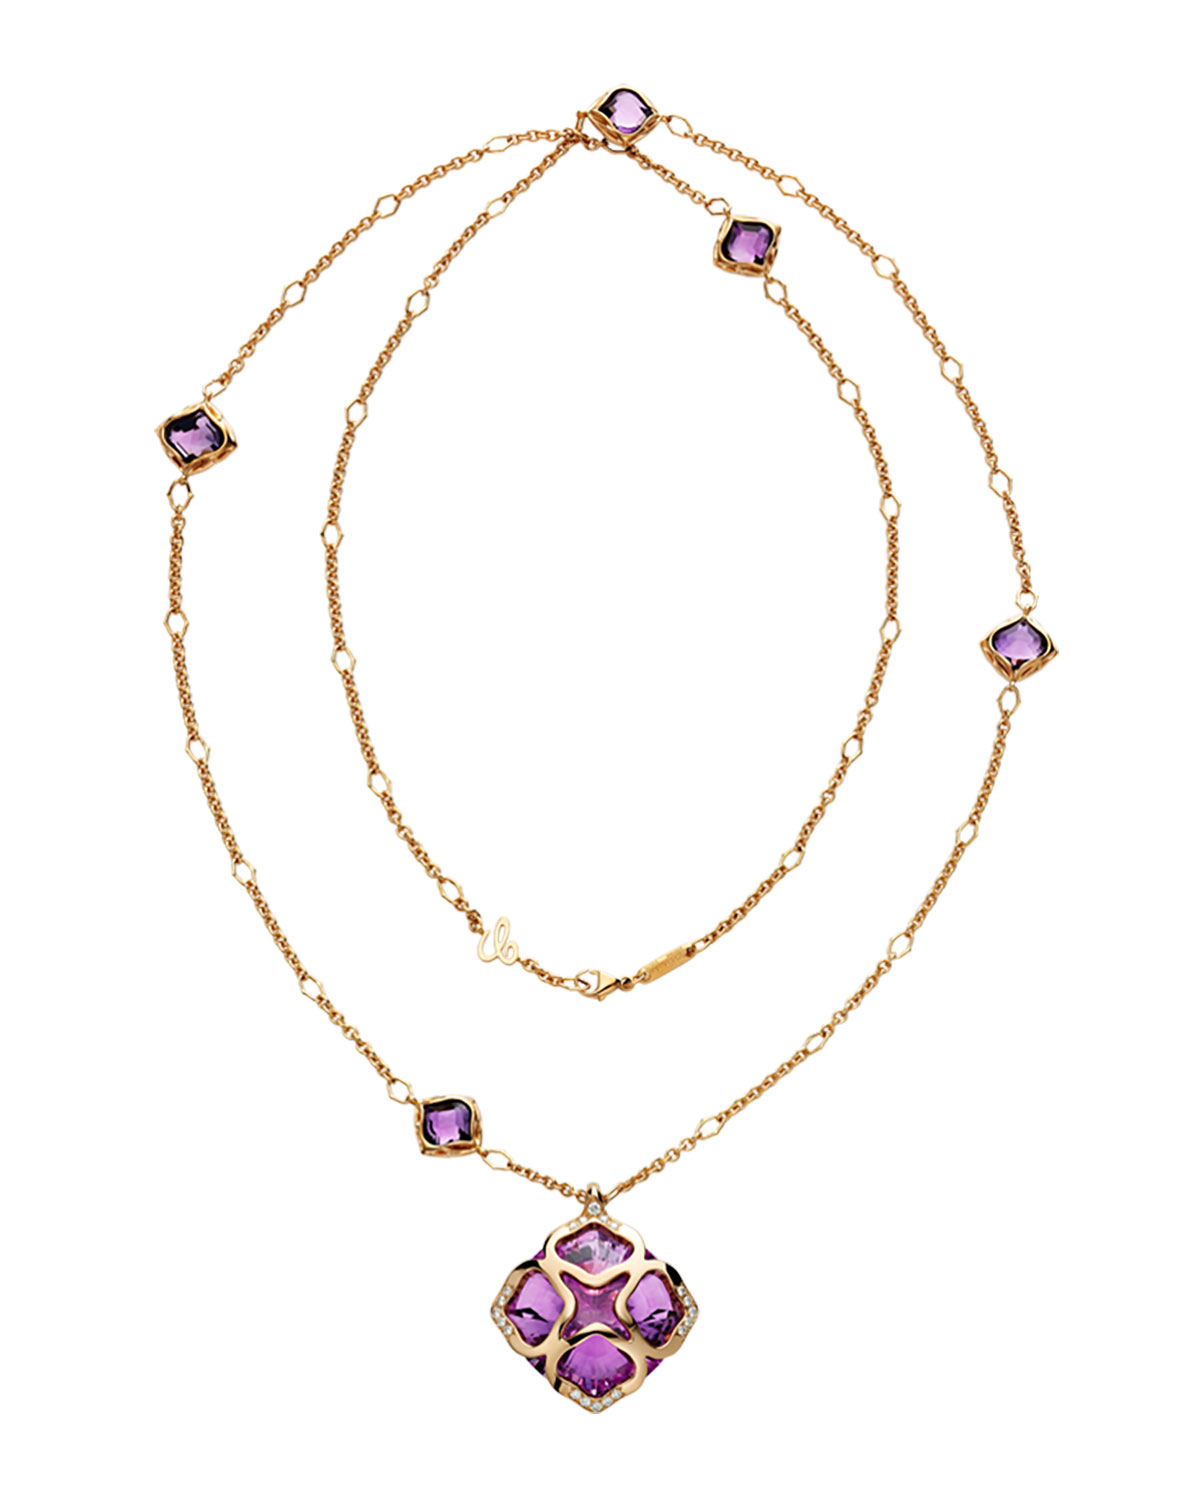 54efa58a5775e Chopard Imperiale Amethyst Station Necklace with Diamonds | Neiman ...